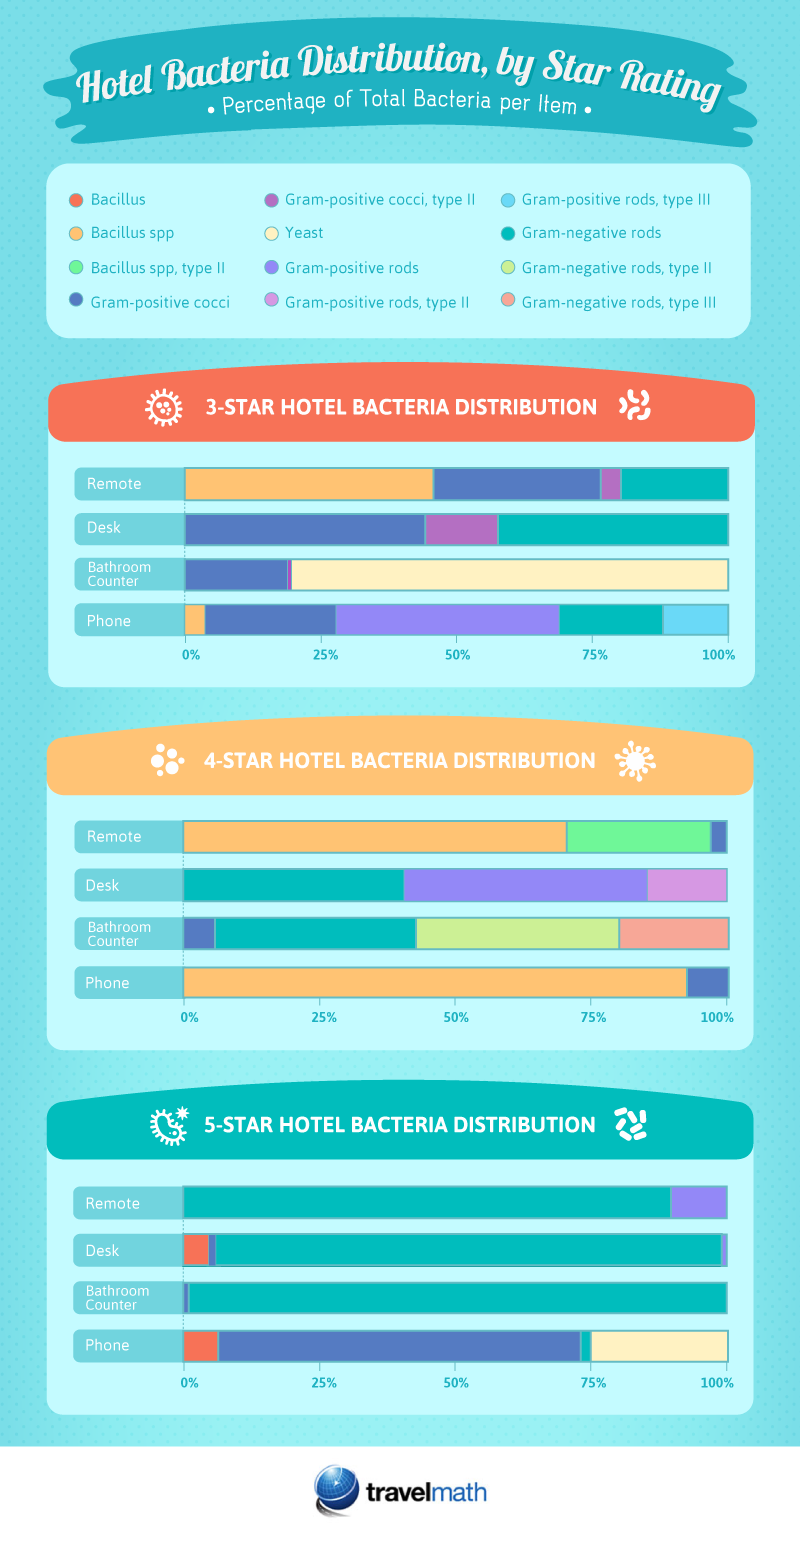 Percentage of Total Bacteria per Item